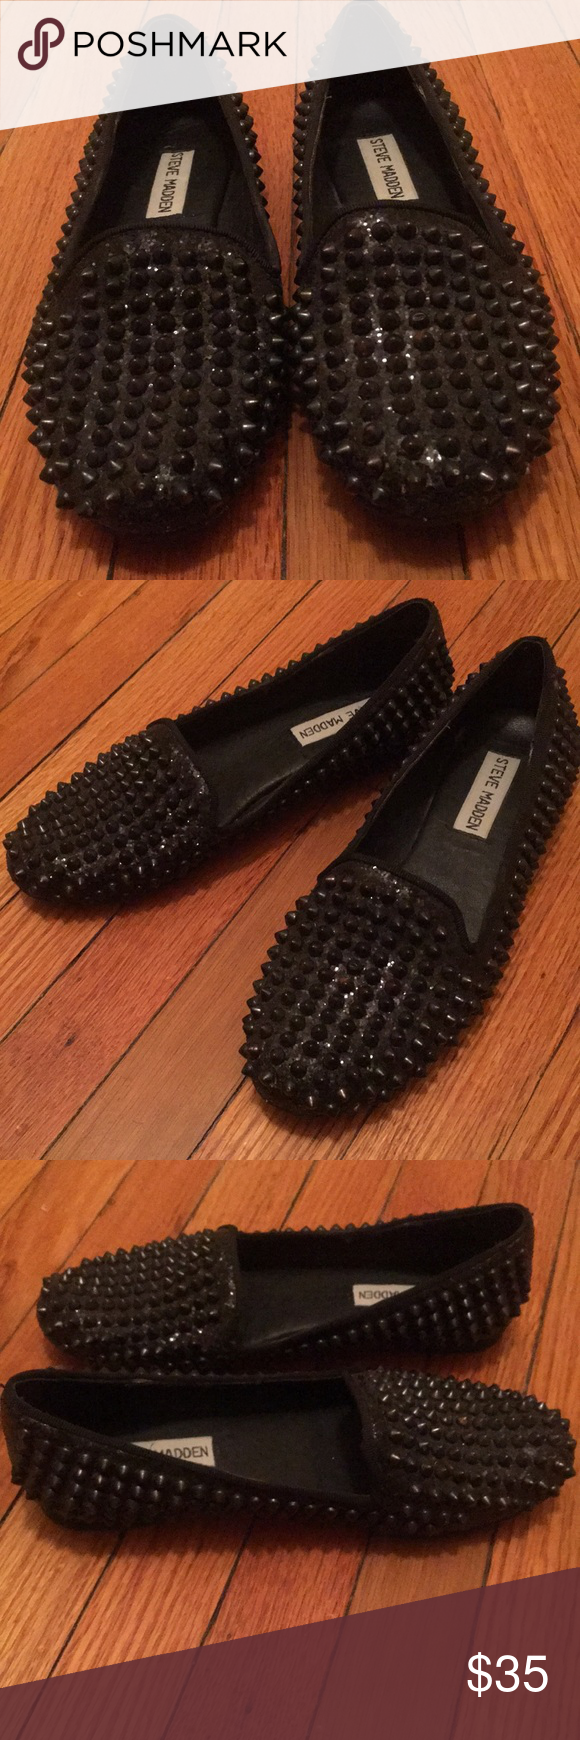 f1ca6576797 Sale 🌸Women s Steve Madden Black Studded Loafer💥 Steve Madden Black Metal  Spike Studded Women s Loafer. Fabric upper with leather lining. Gently worn  see ...